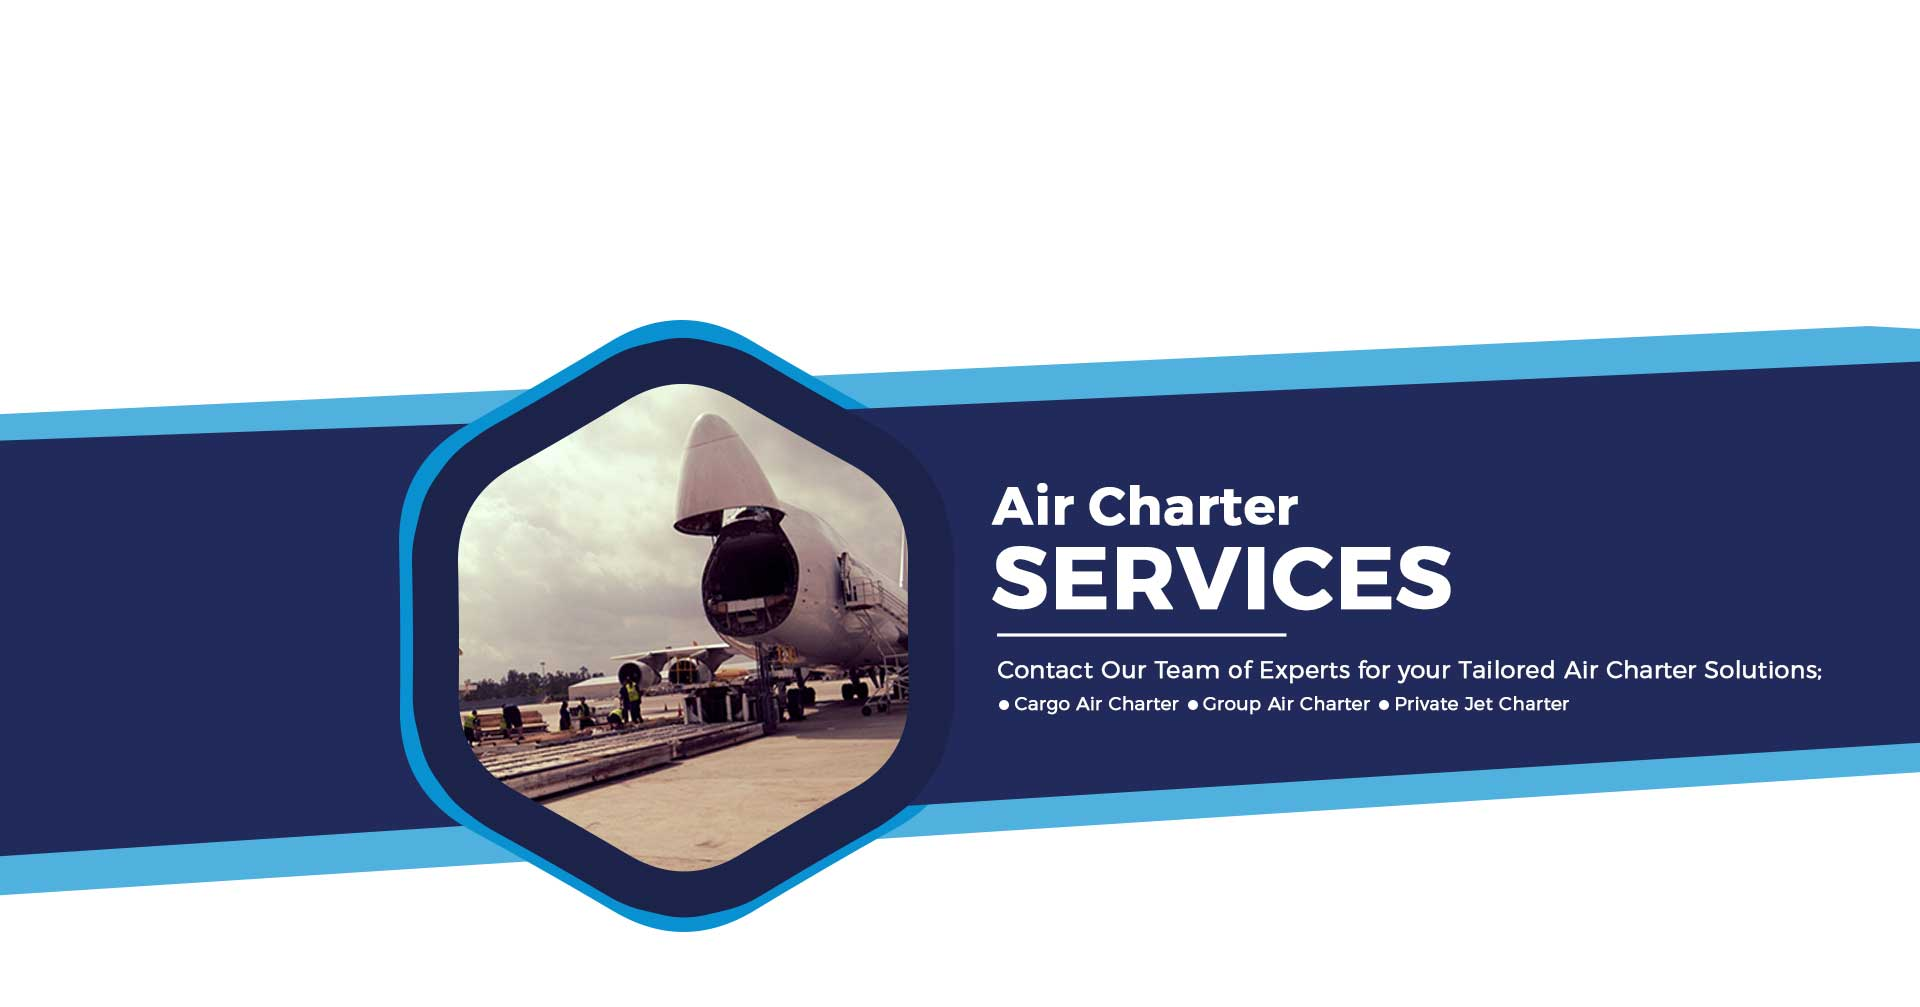 Air Charter Services Campaign